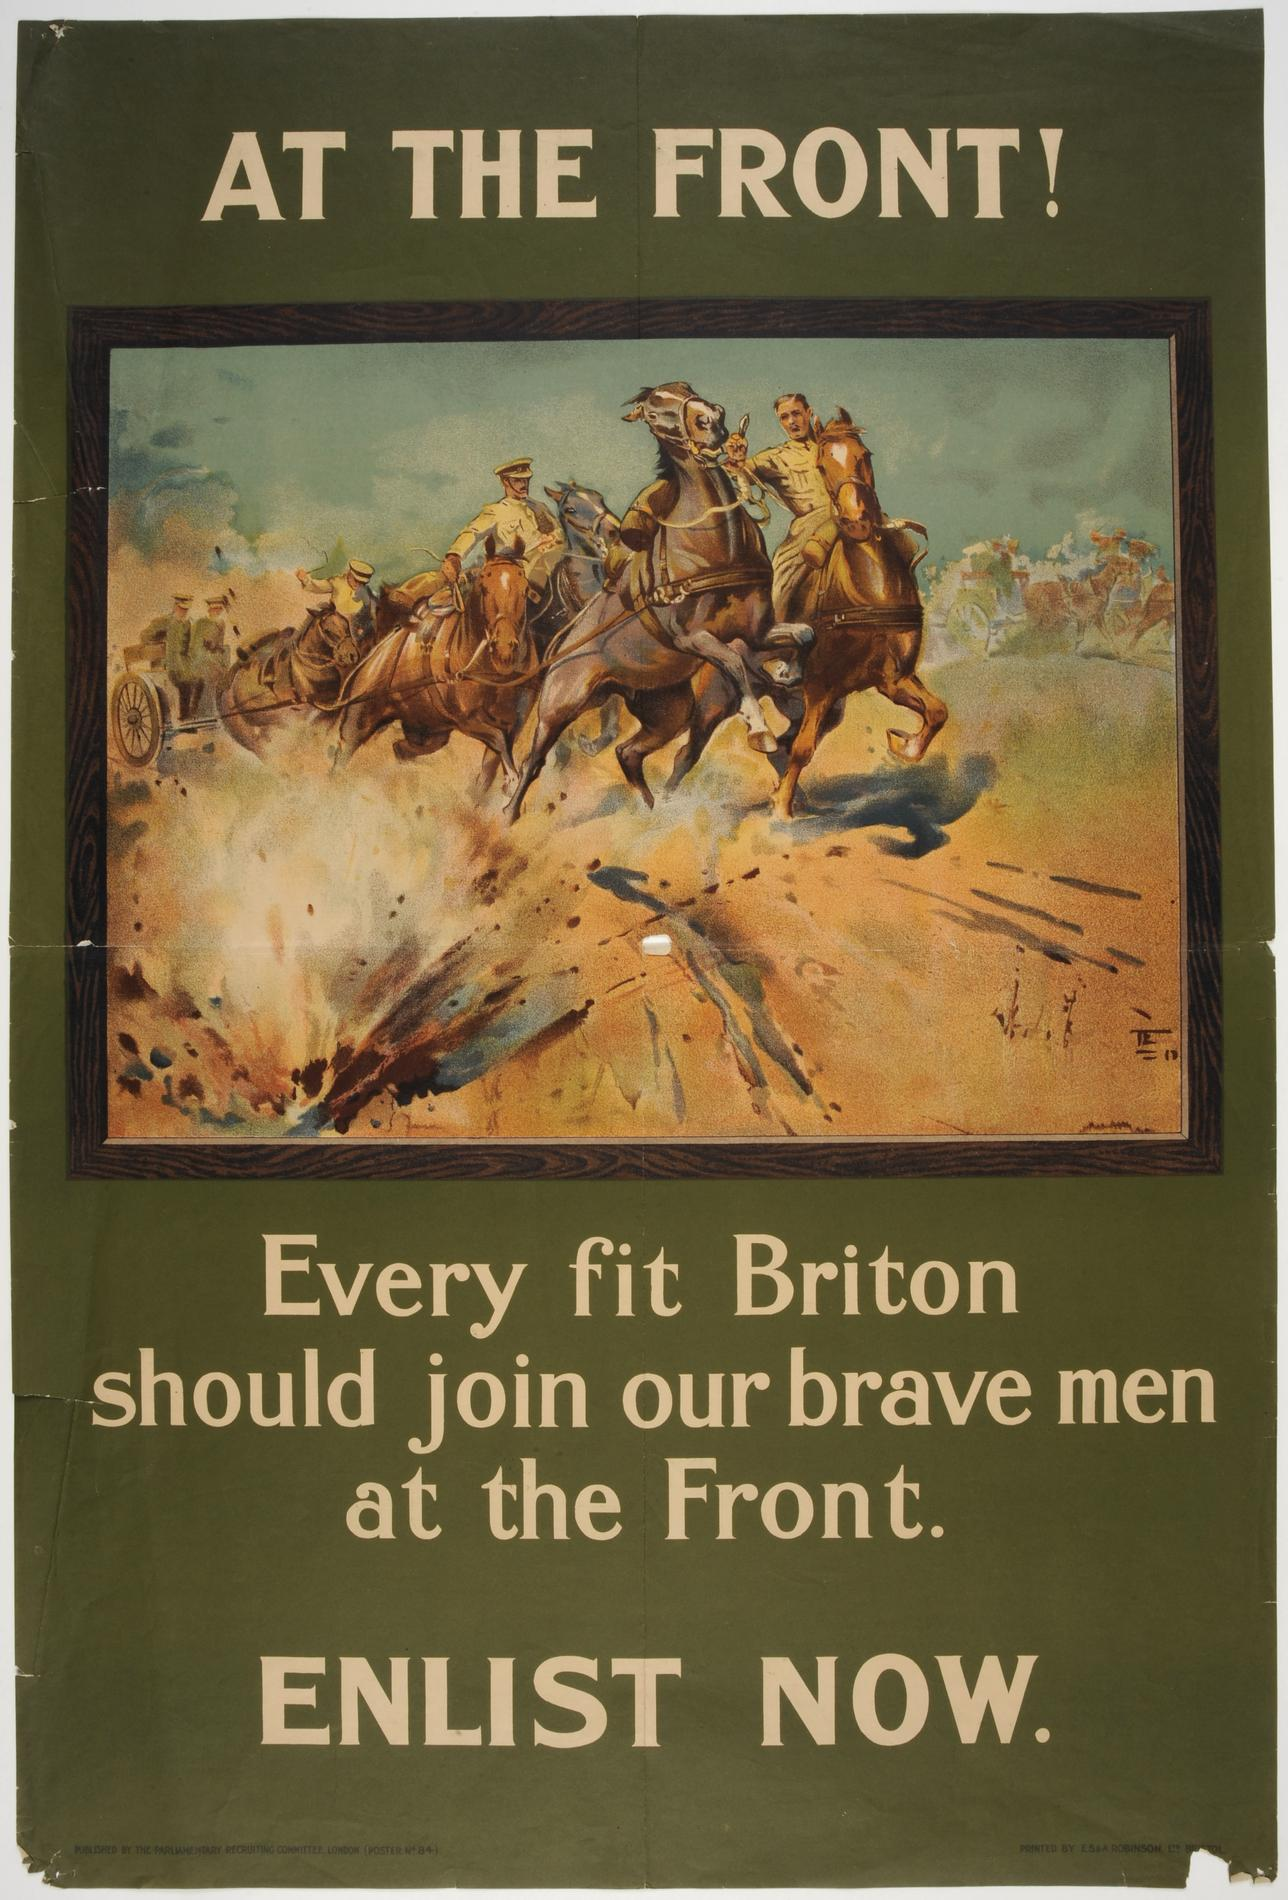 'AT THE FRONT! Every fit Briton should join our brave men at the Front. ENLIST NOW' (Poster)